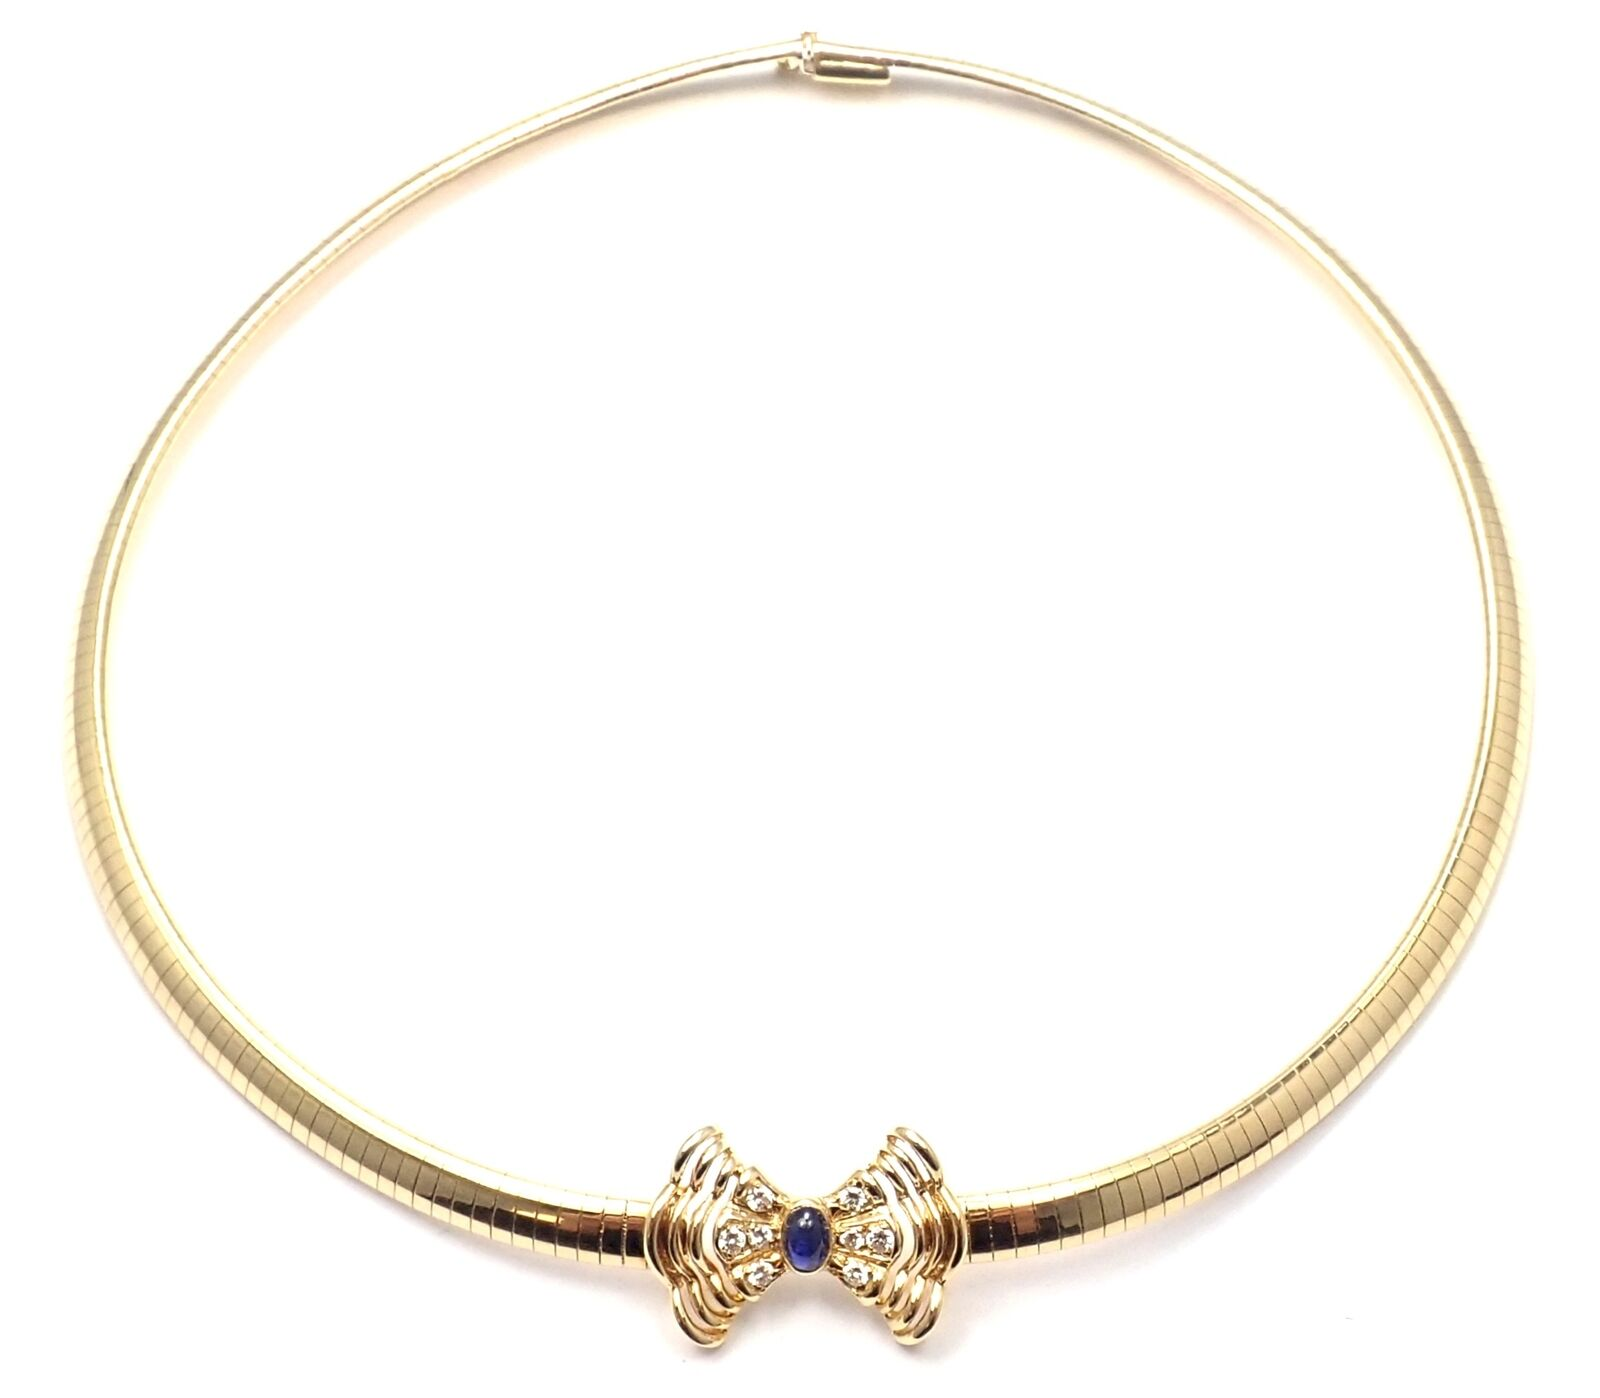 Rare! Authentic Christian Dior 18k Yellow Gold Diamond Sapphire Bow Necklace